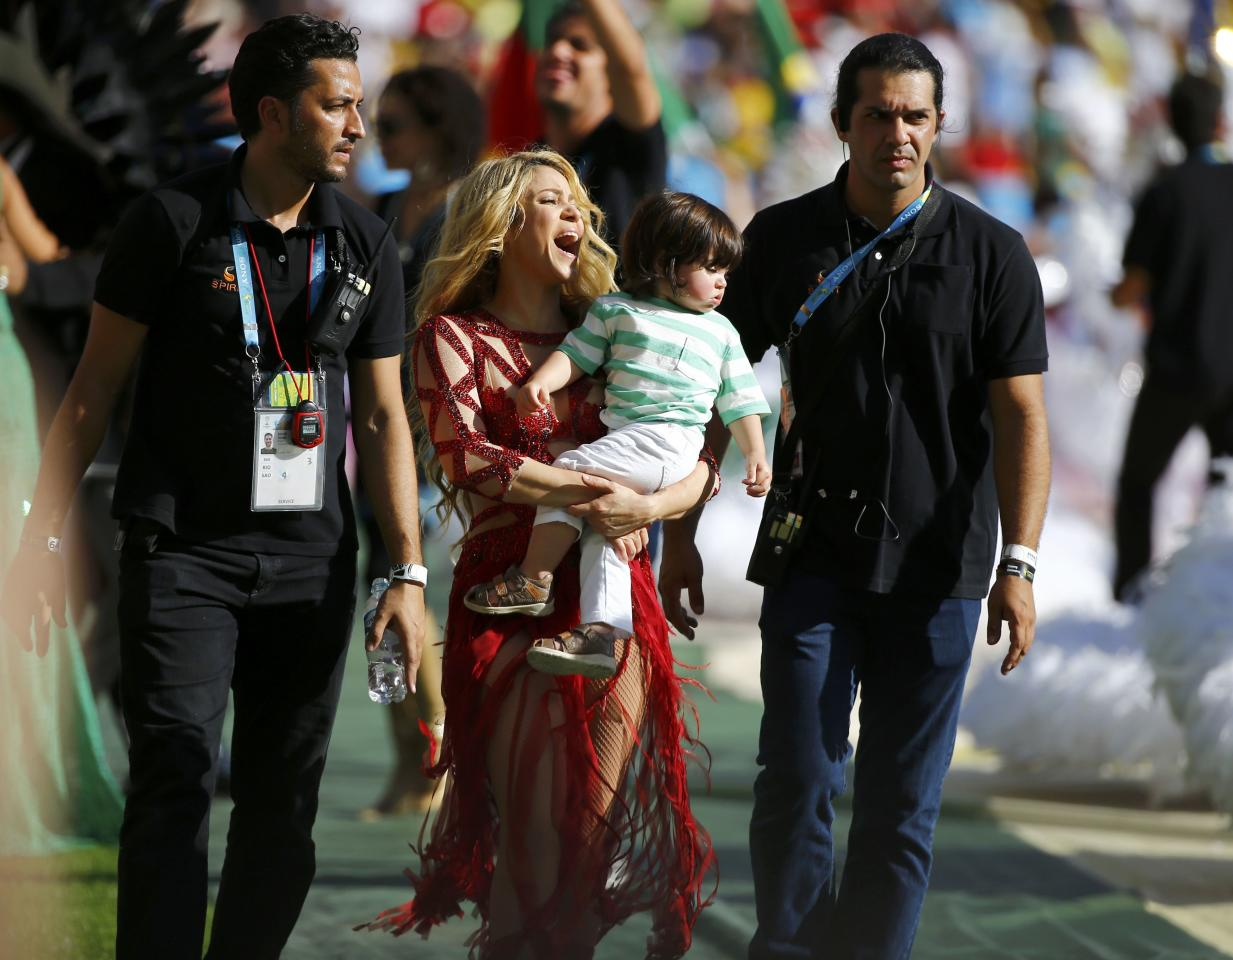 Singer Shakira carries her son Milan during the 2014 World Cup closing ceremony at the Maracana stadium in Rio de Janeiro July 13, 2014. REUTERS/Damir Sagolj (BRAZIL - Tags: SOCCER SPORT WORLD CUP)